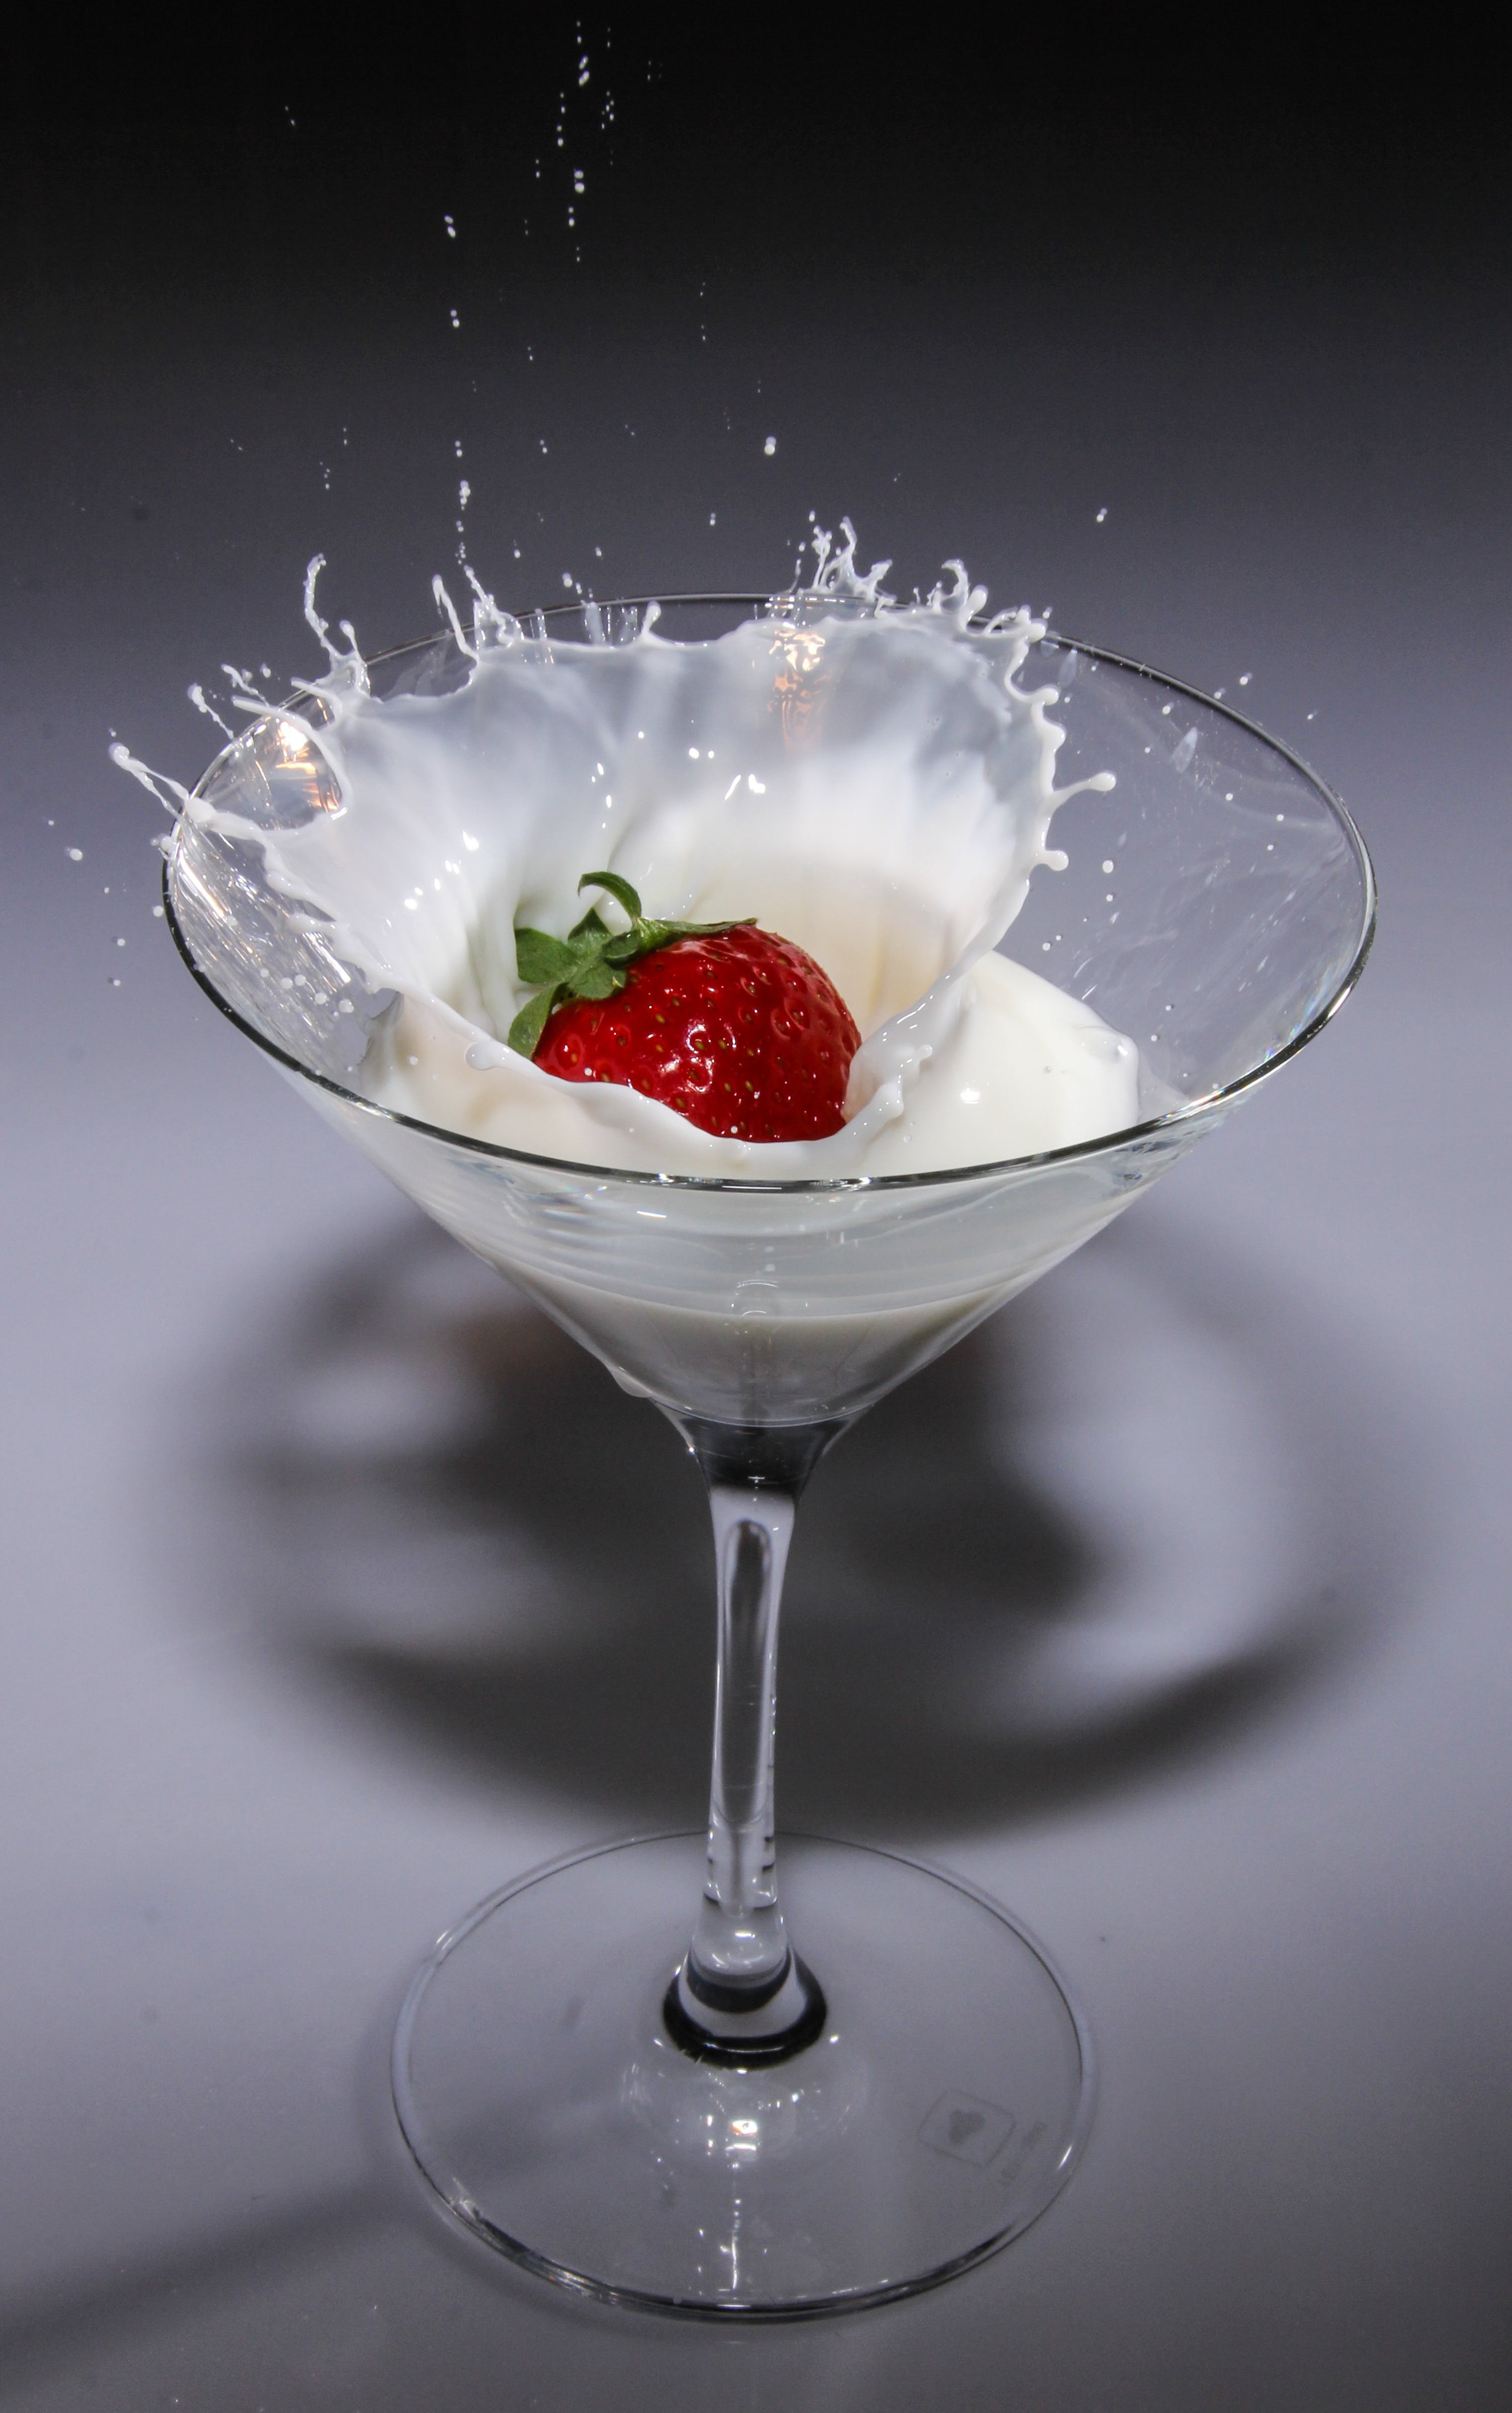 Clear Long Stem Wine Glass With Strawberry and White Liquid